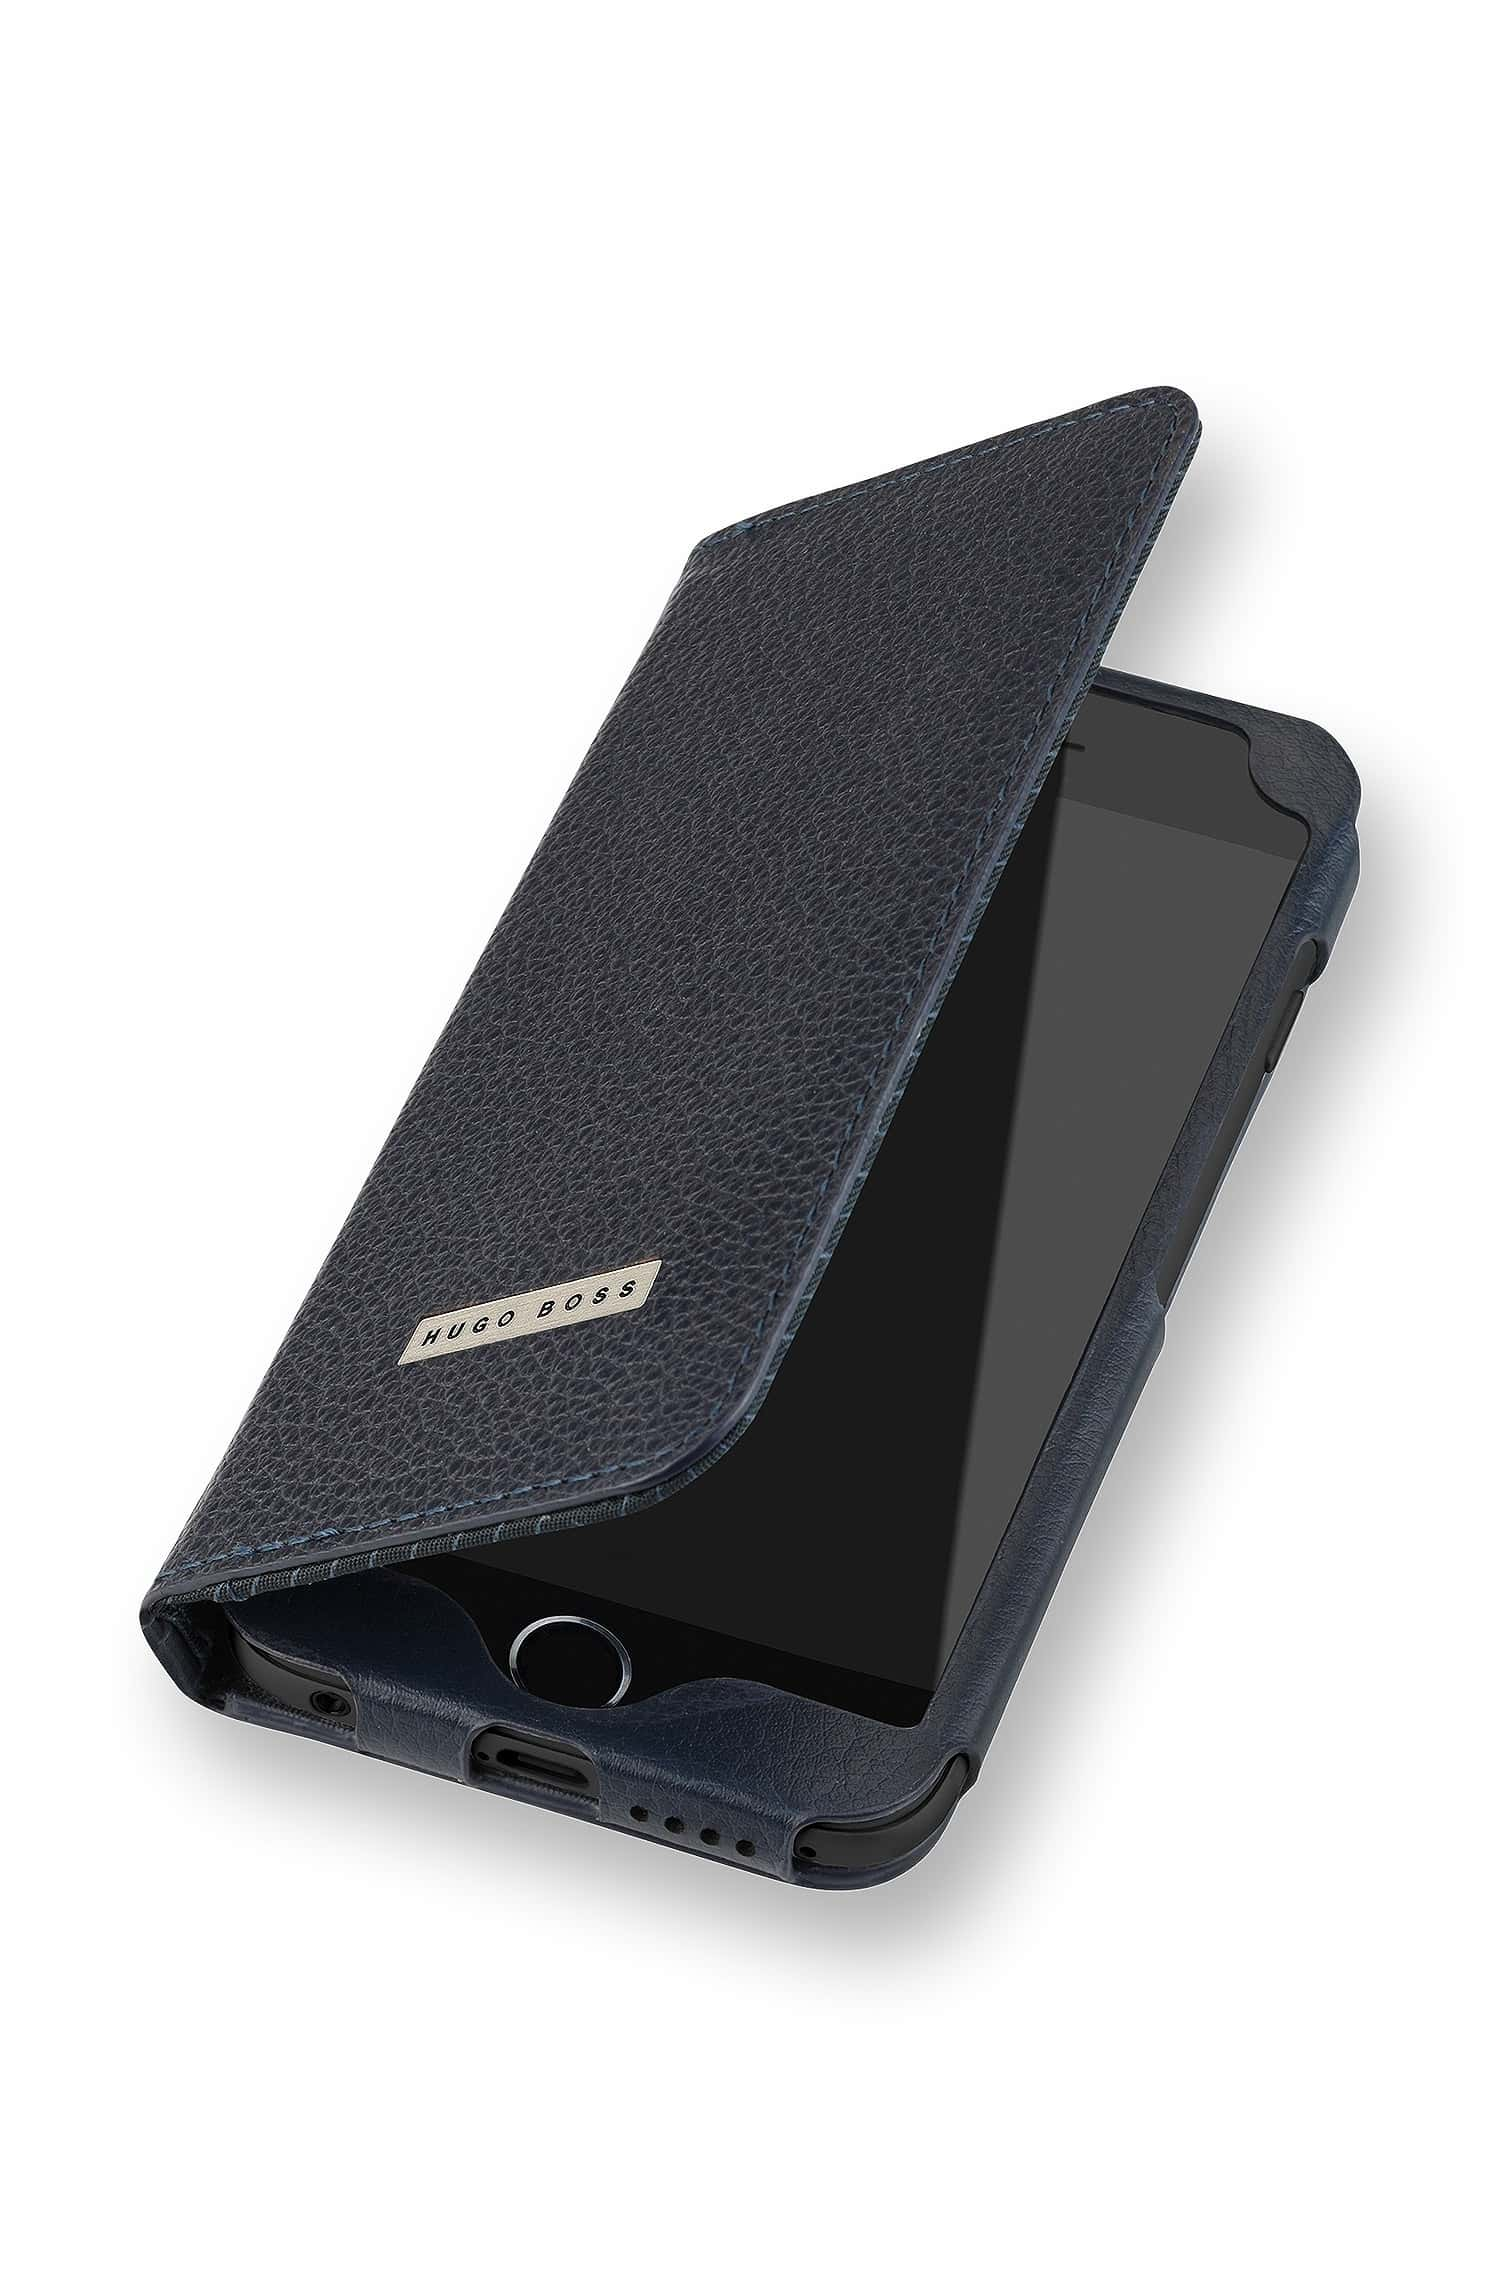 Boss leather booklet case 'folianti ip6 4. 7' for iphone 6 4. 7.